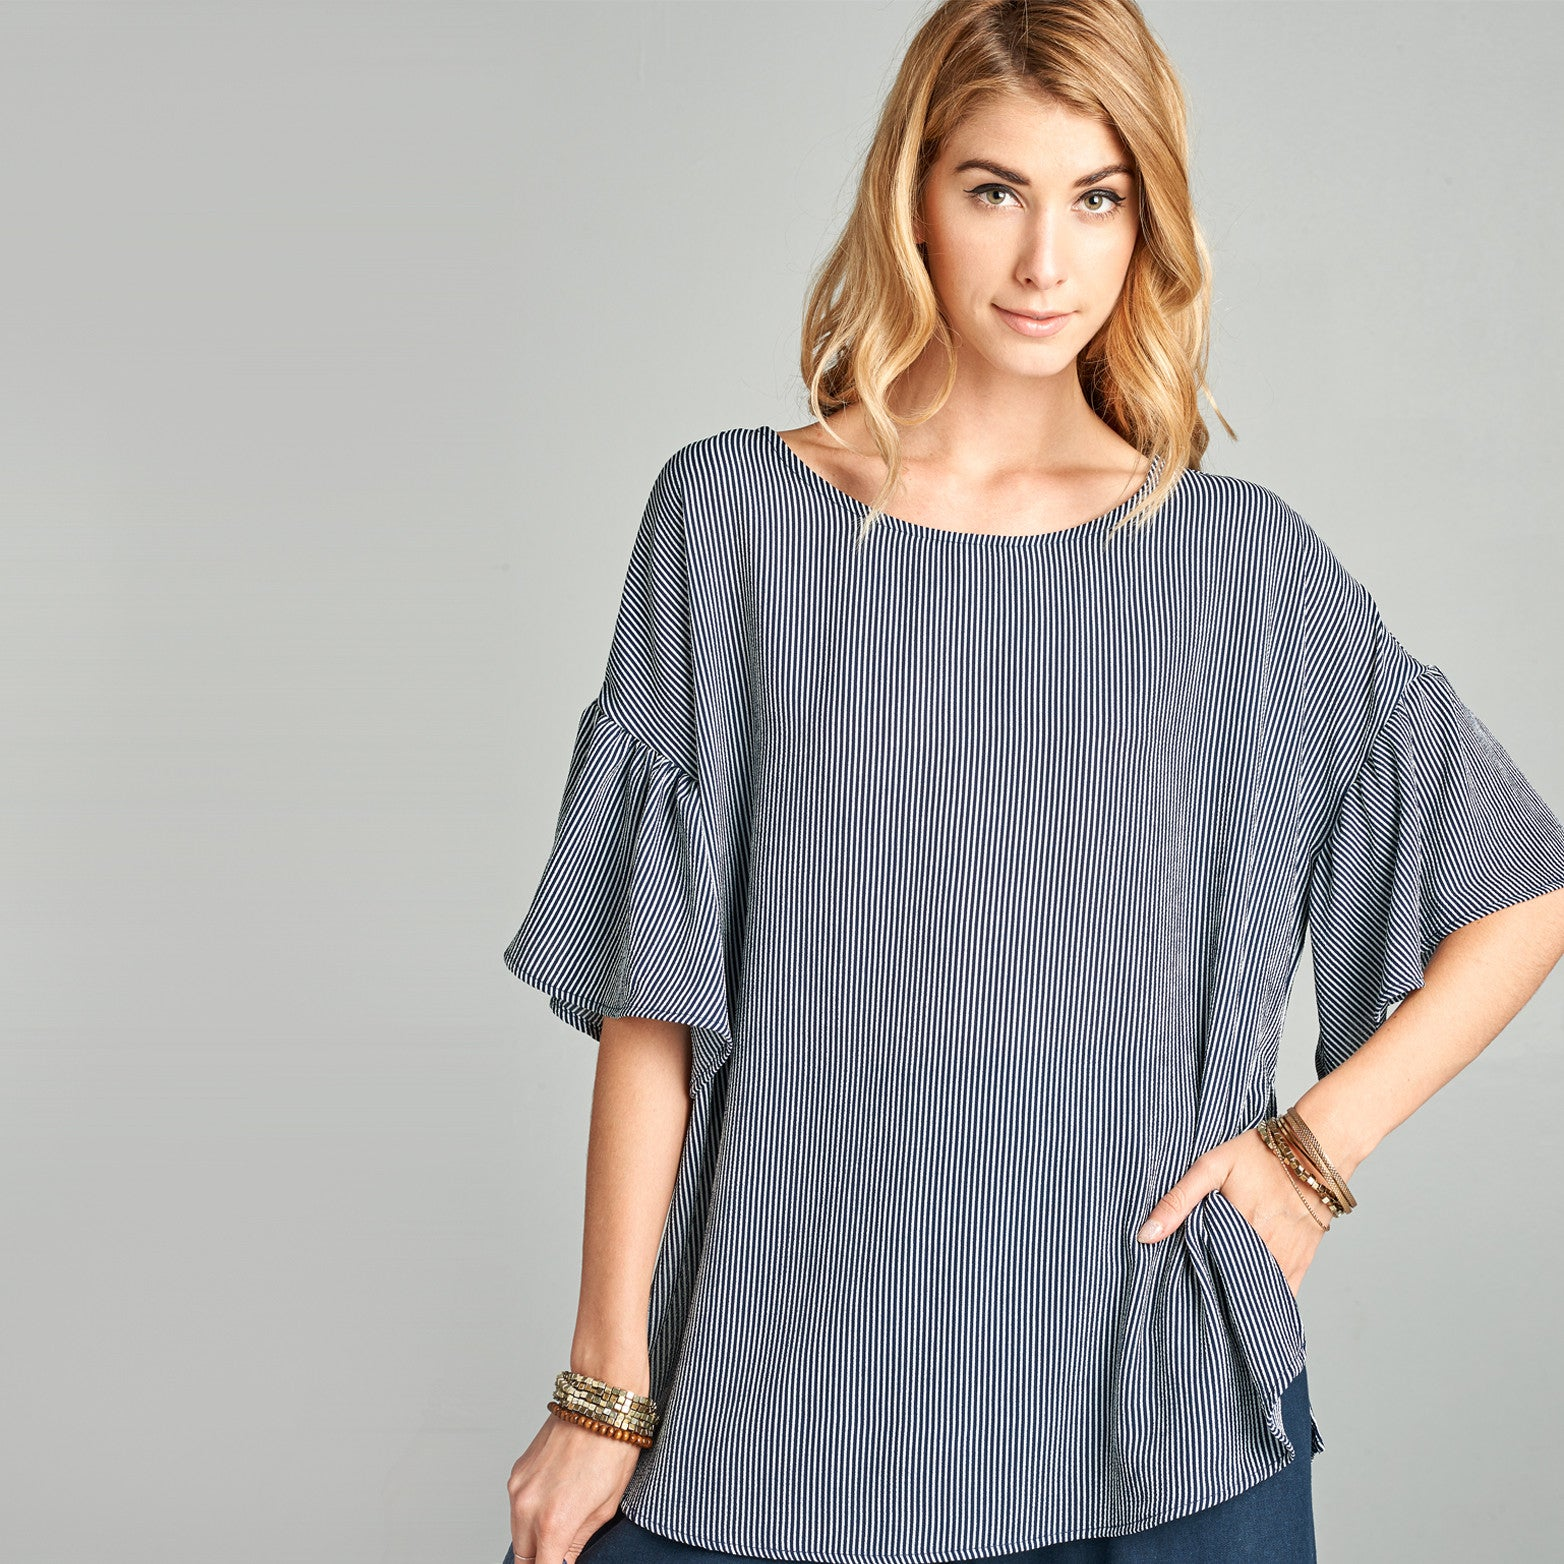 Relaxed Fit Striped Bell Sleeve Top - Love, Kuza